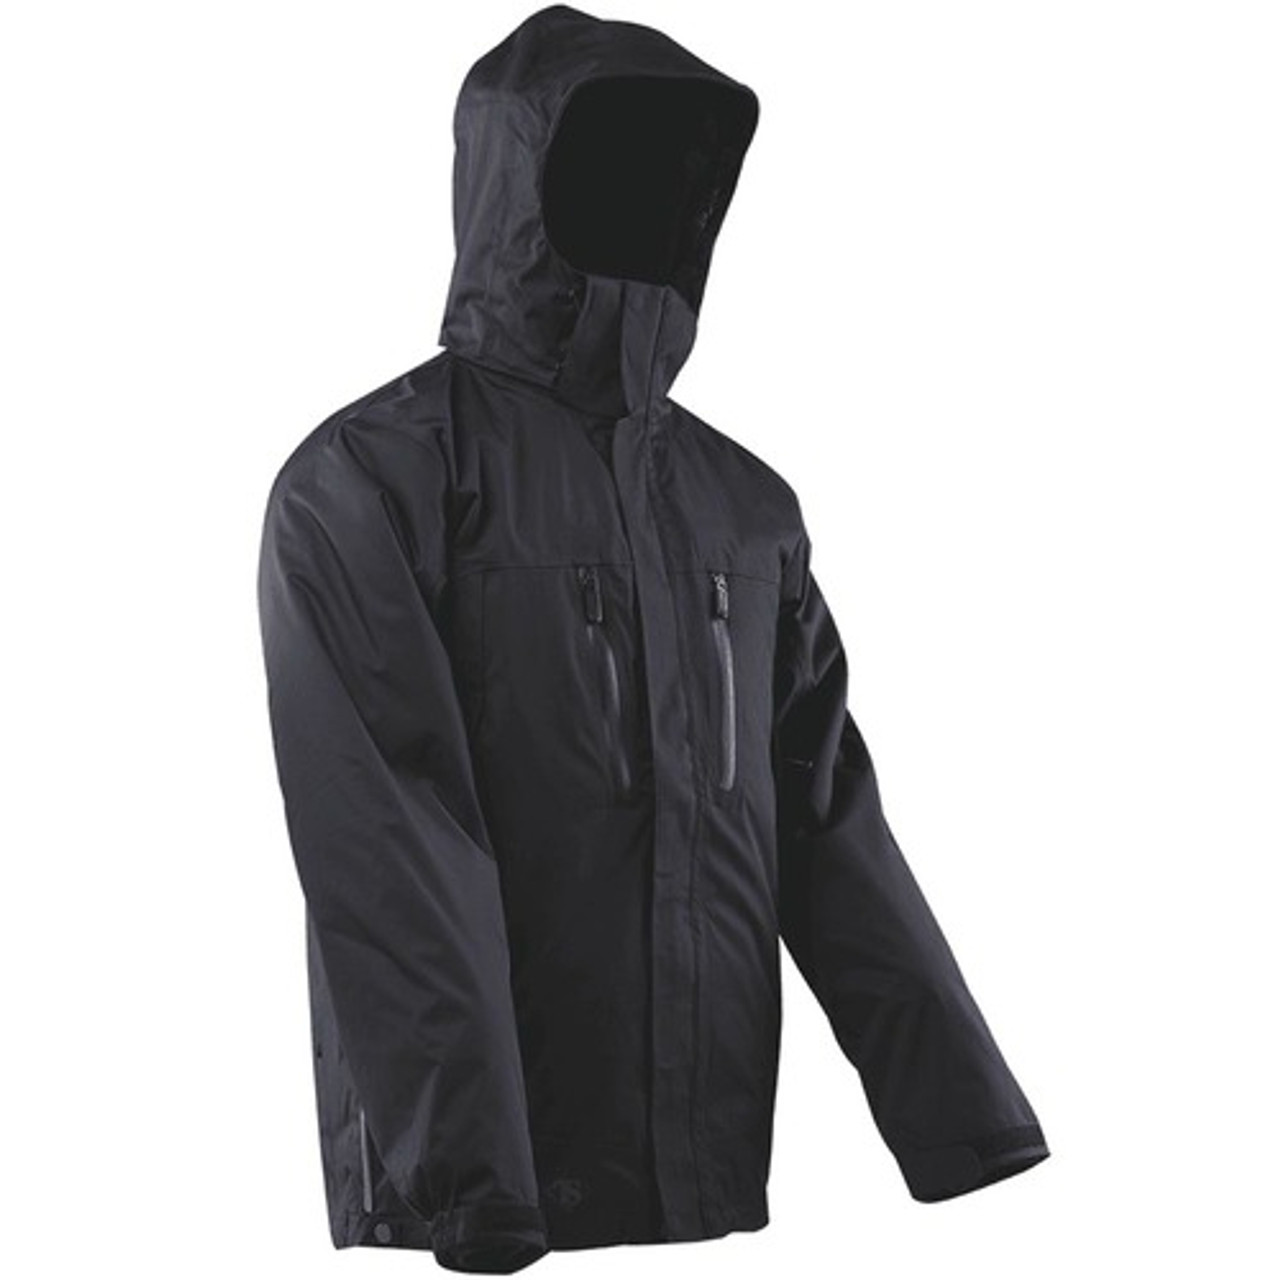 Tru-Spec TS-2497 Outerwear Water Proof Element Casual Tactical Jacket, with Side hand pockets, Adjustable cuff, and Zip-off hood, Black